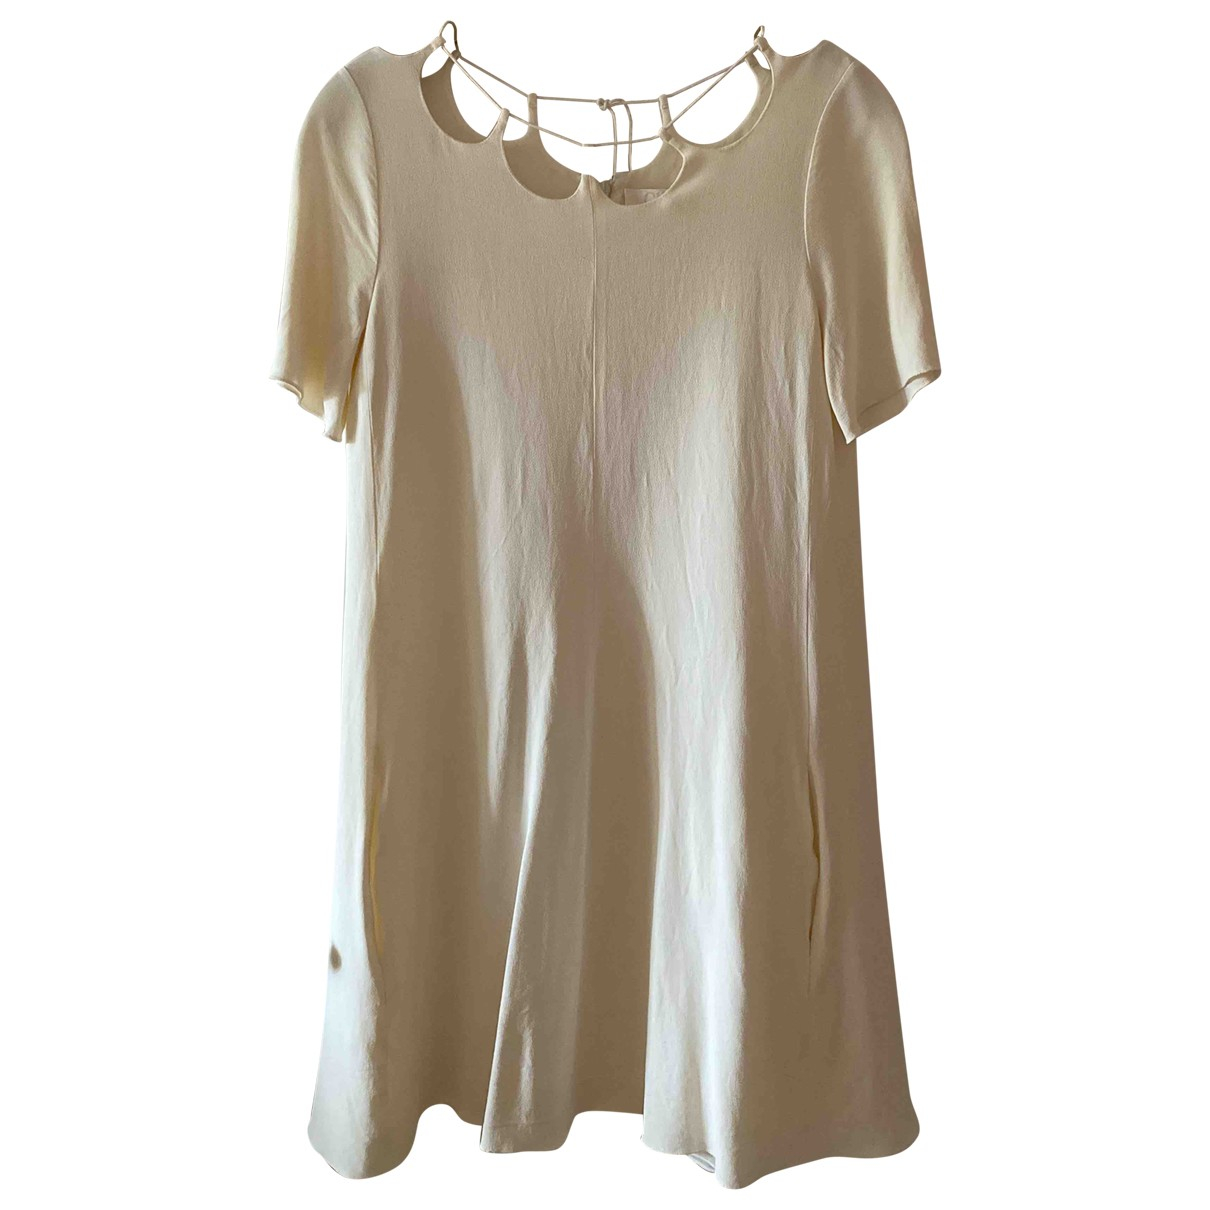 Chloé N Ecru dress for Women 36 FR